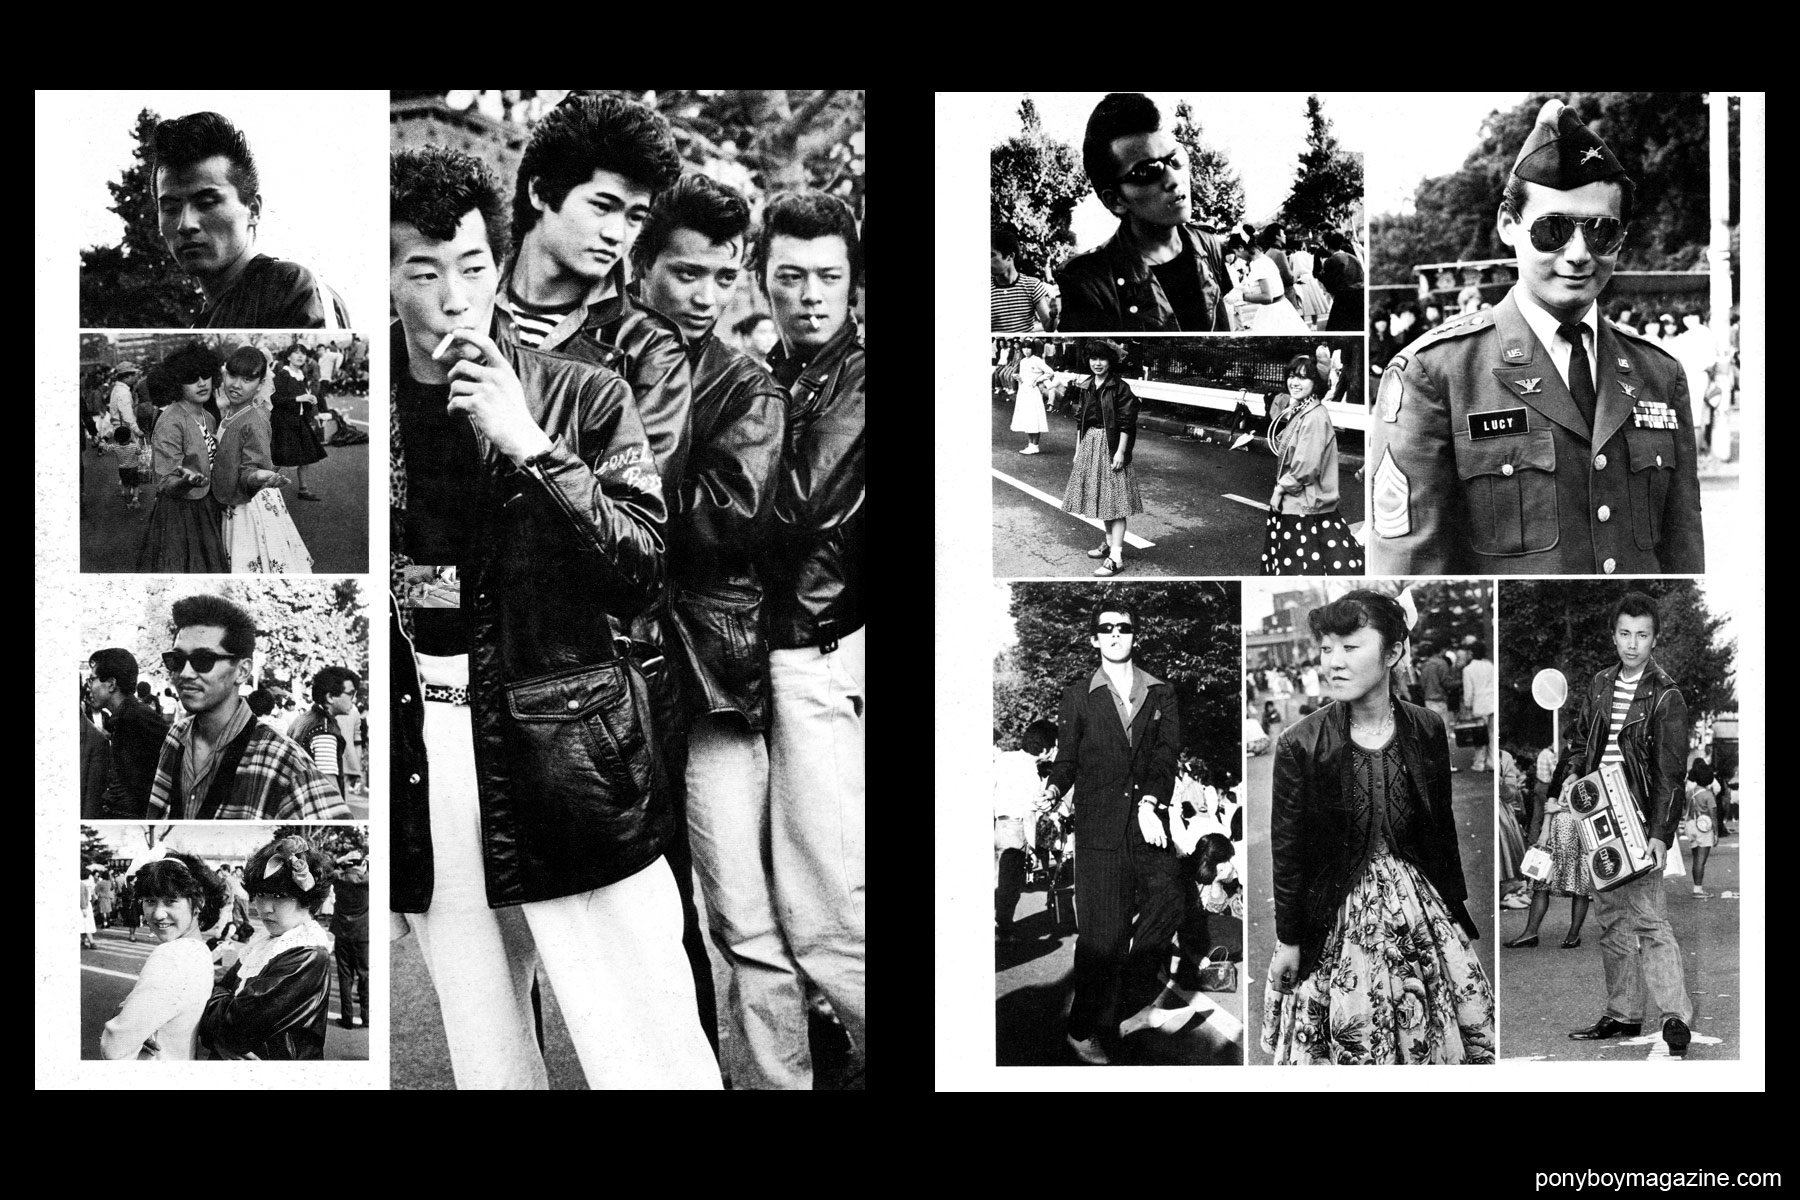 B&W photos of young men and women in Japan, dressed in 50's fashion. From the book